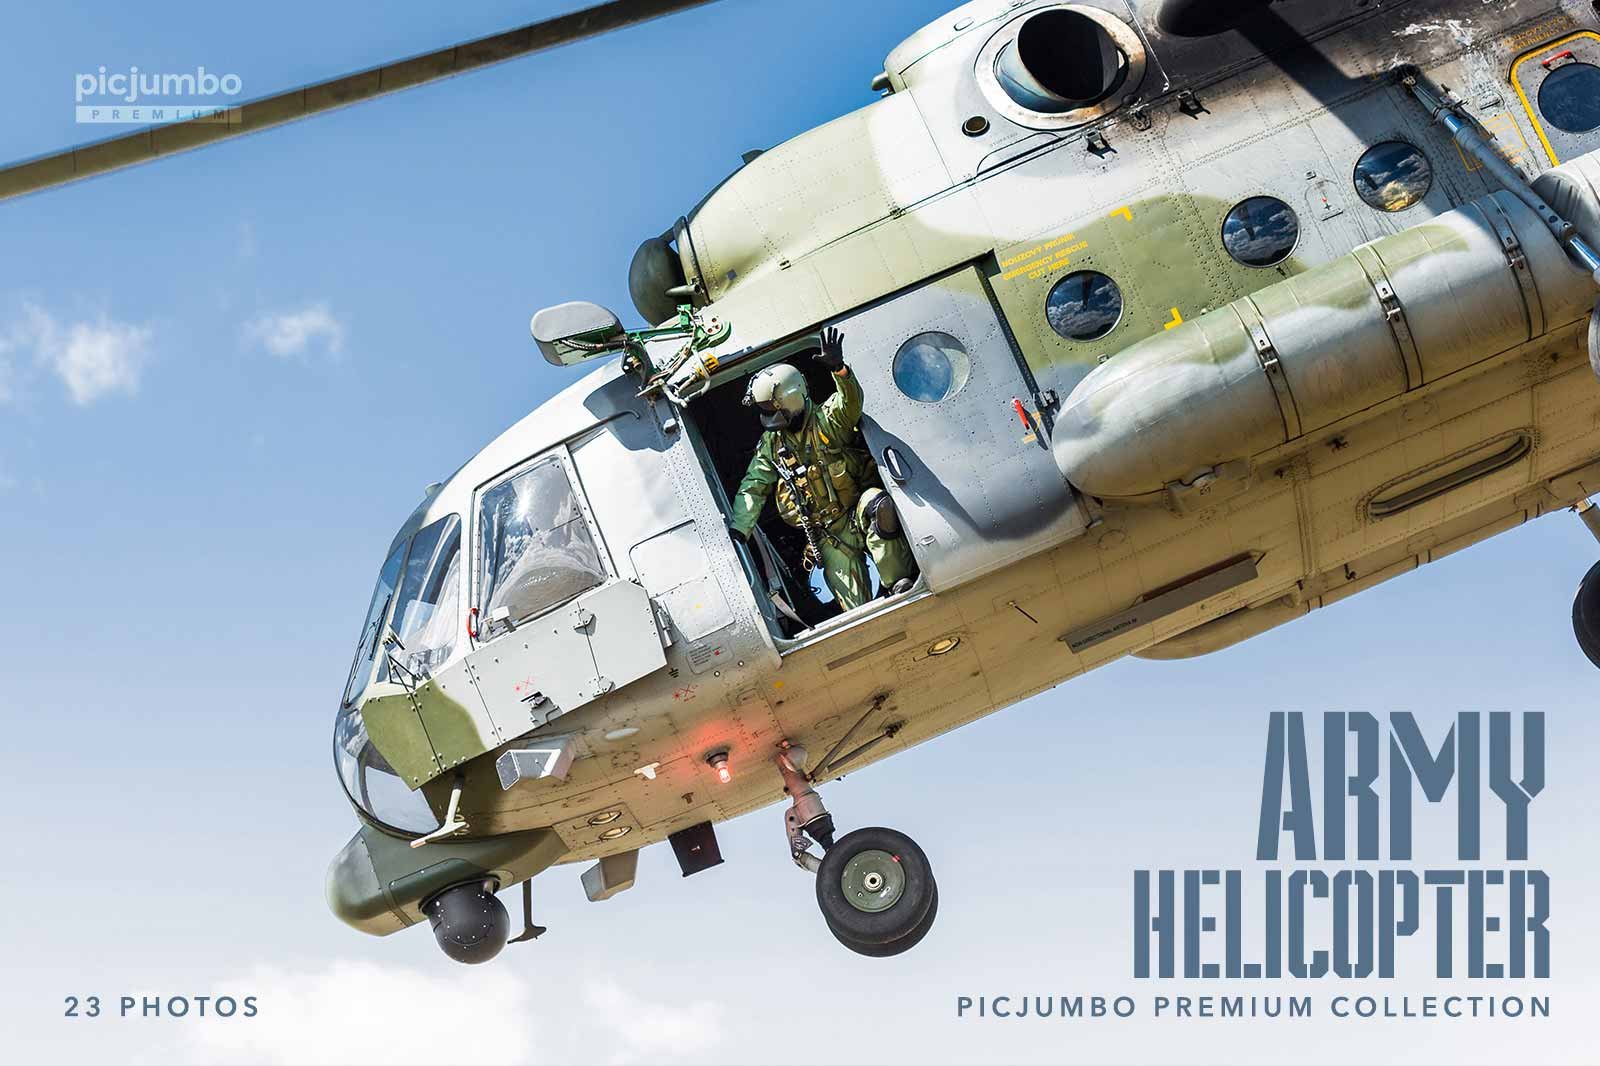 Join PREMIUM and get full collection now: Army Helicopter